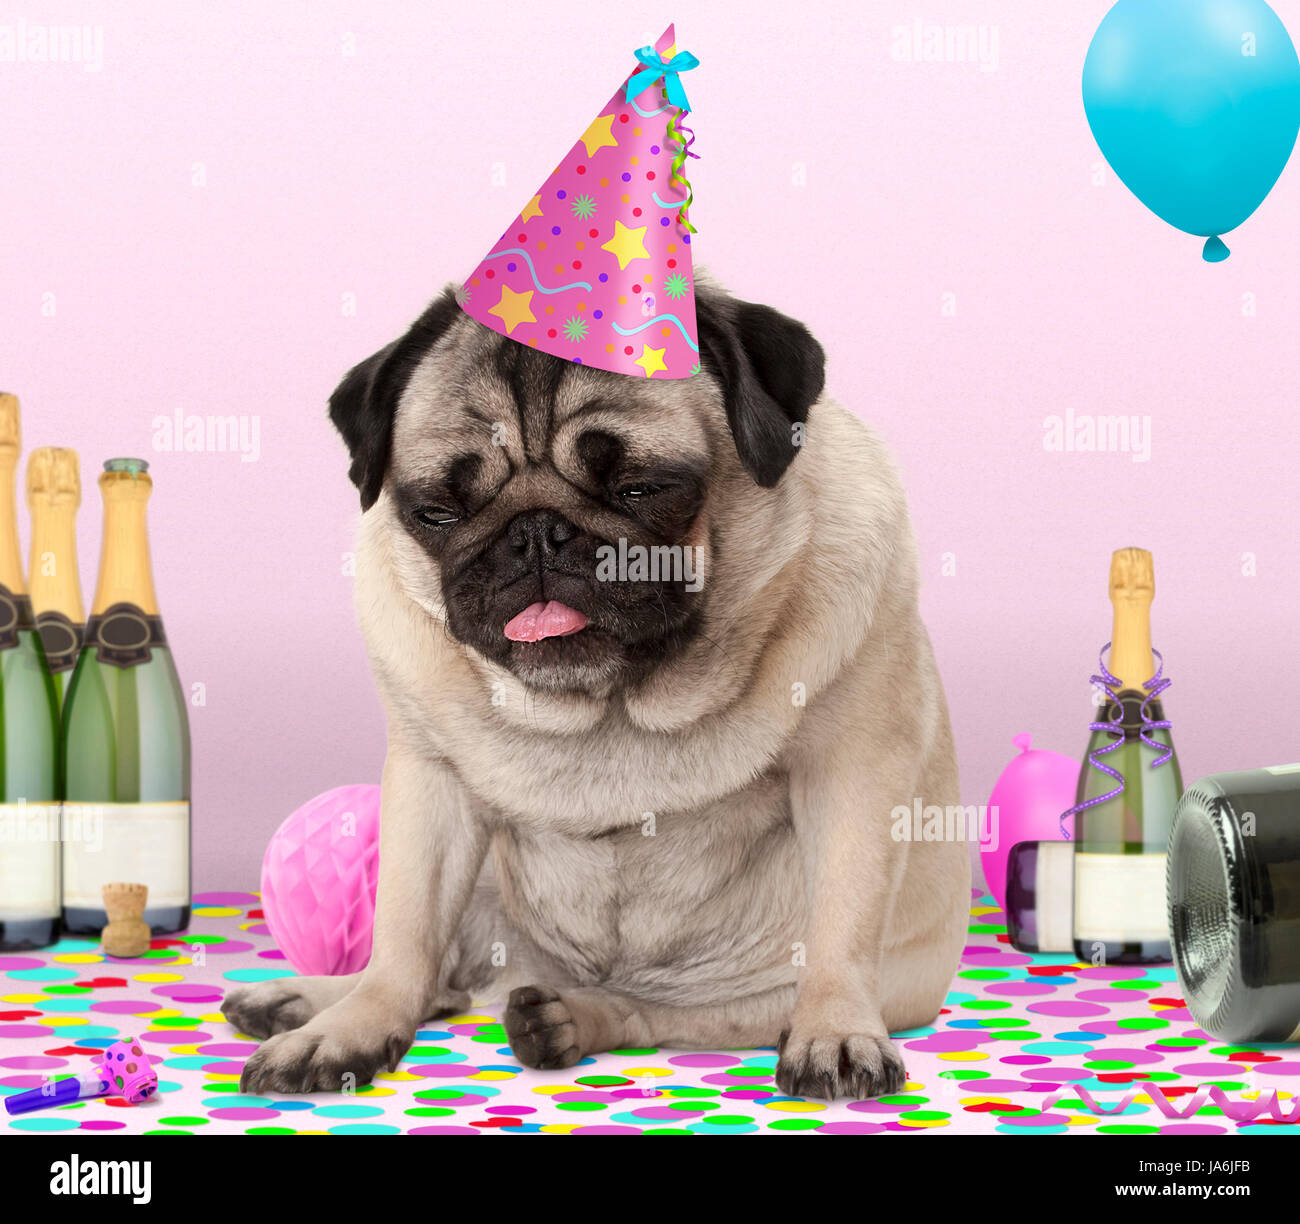 cute pug puppy dog wearing party hat, lying down on confetti, drunk on champagne with hangover, on pink background Stock Photo